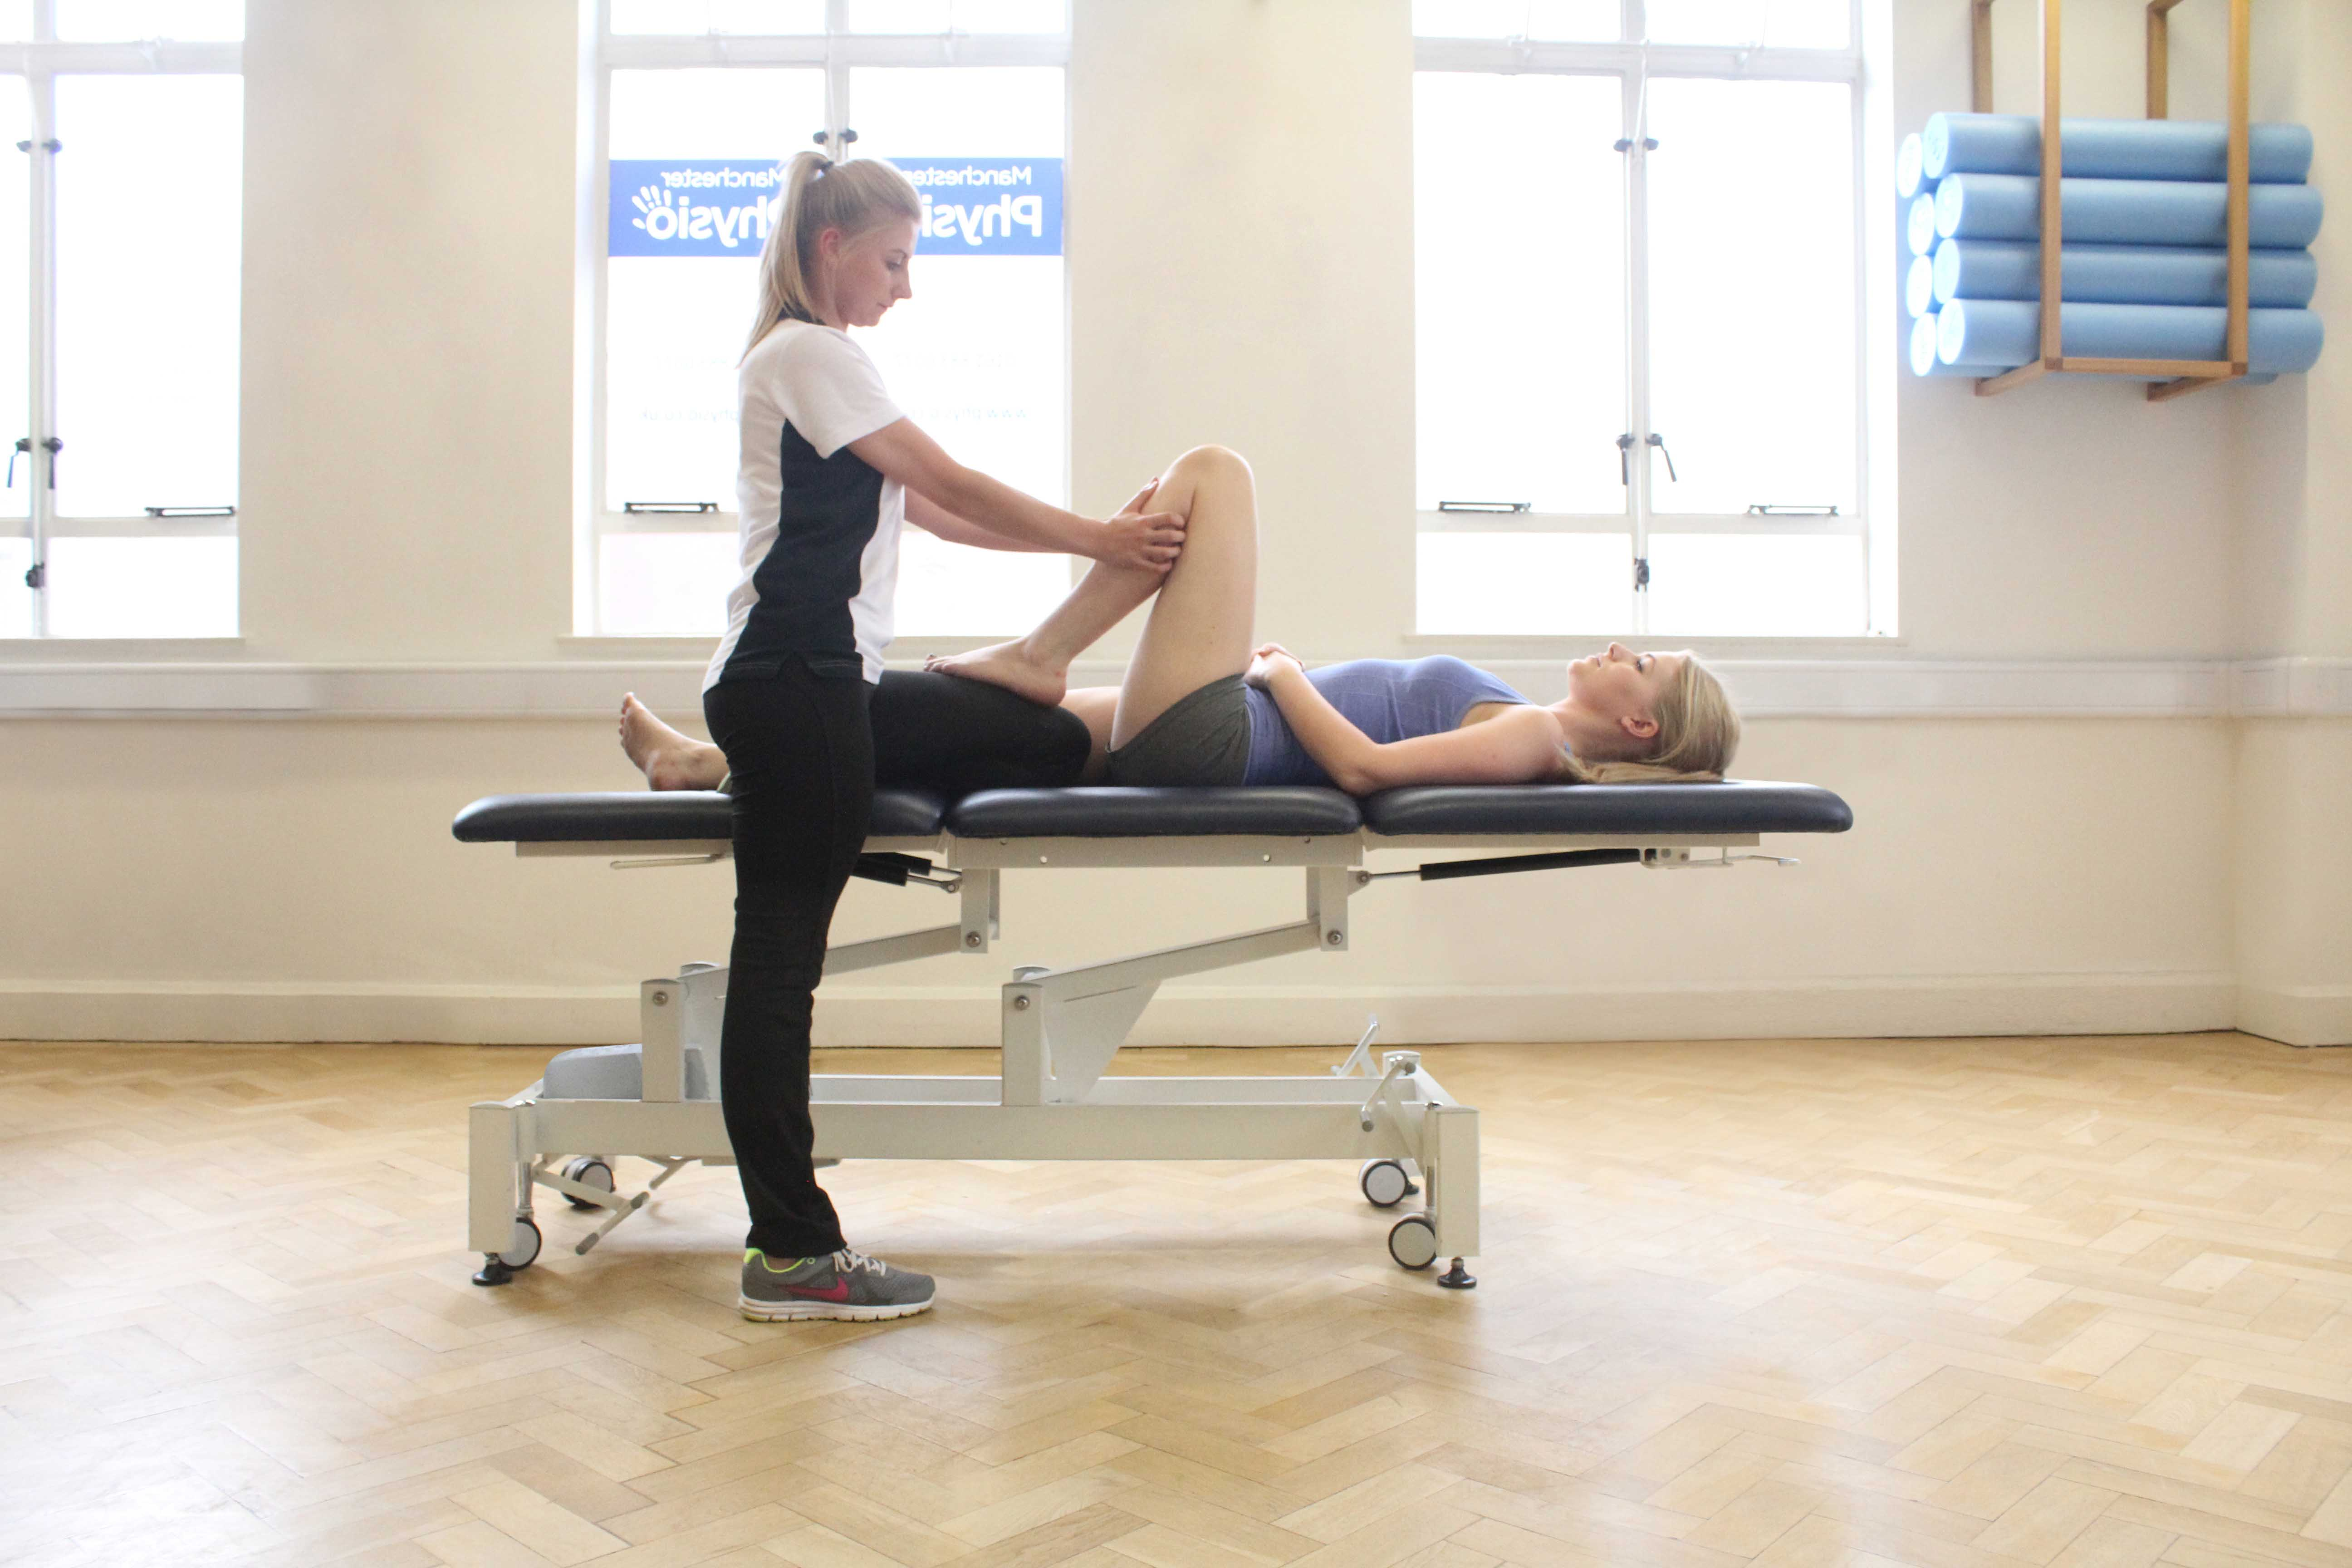 Mobilisations of the knee joint by a MSK therapist